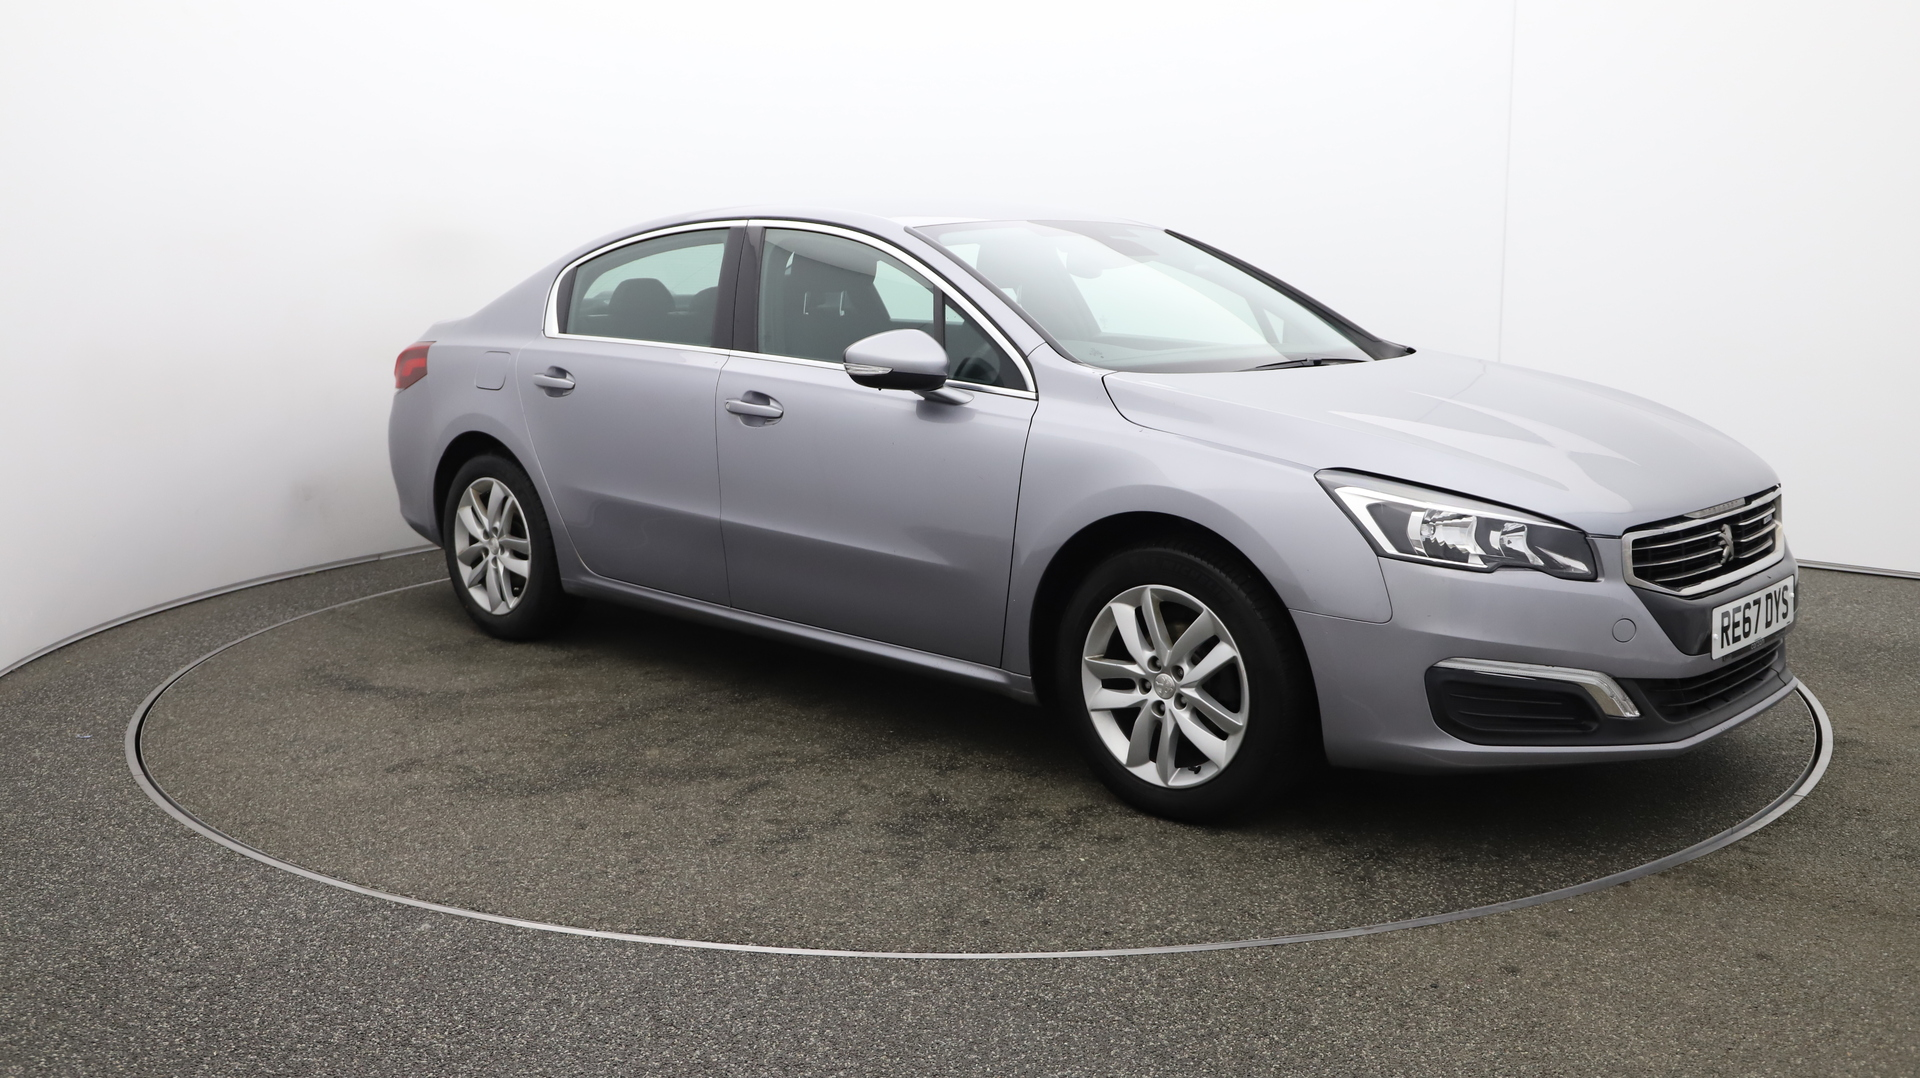 Peugeot 508 BLUE HDI ACTIVE Service History